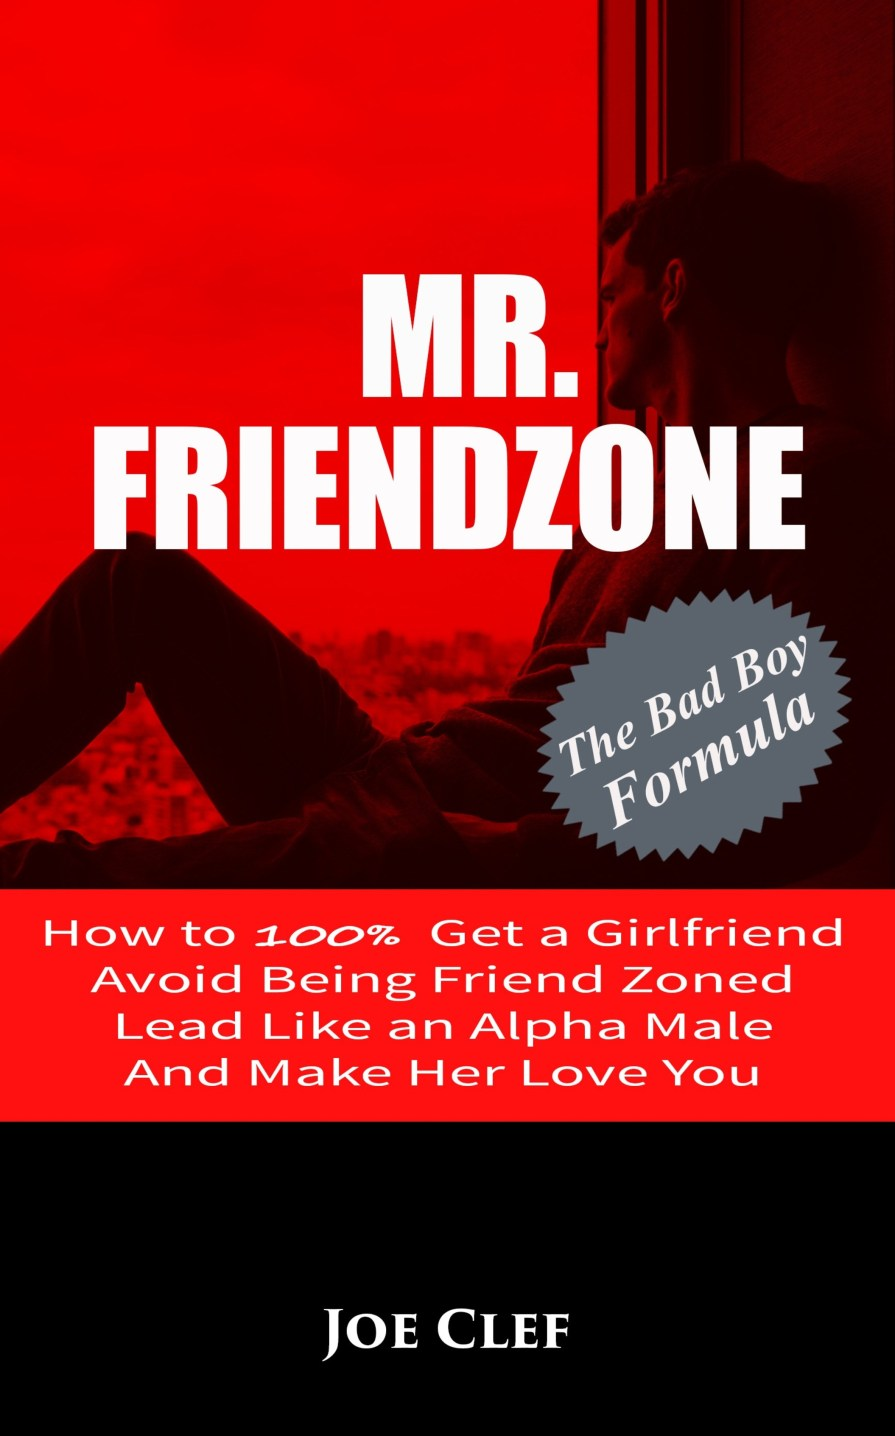 Mr Friendzone - How to 100% Get a Girlfriend, Avoid Being Friend Zoned, Lead Like an Alpha Male, and Make Her Love You